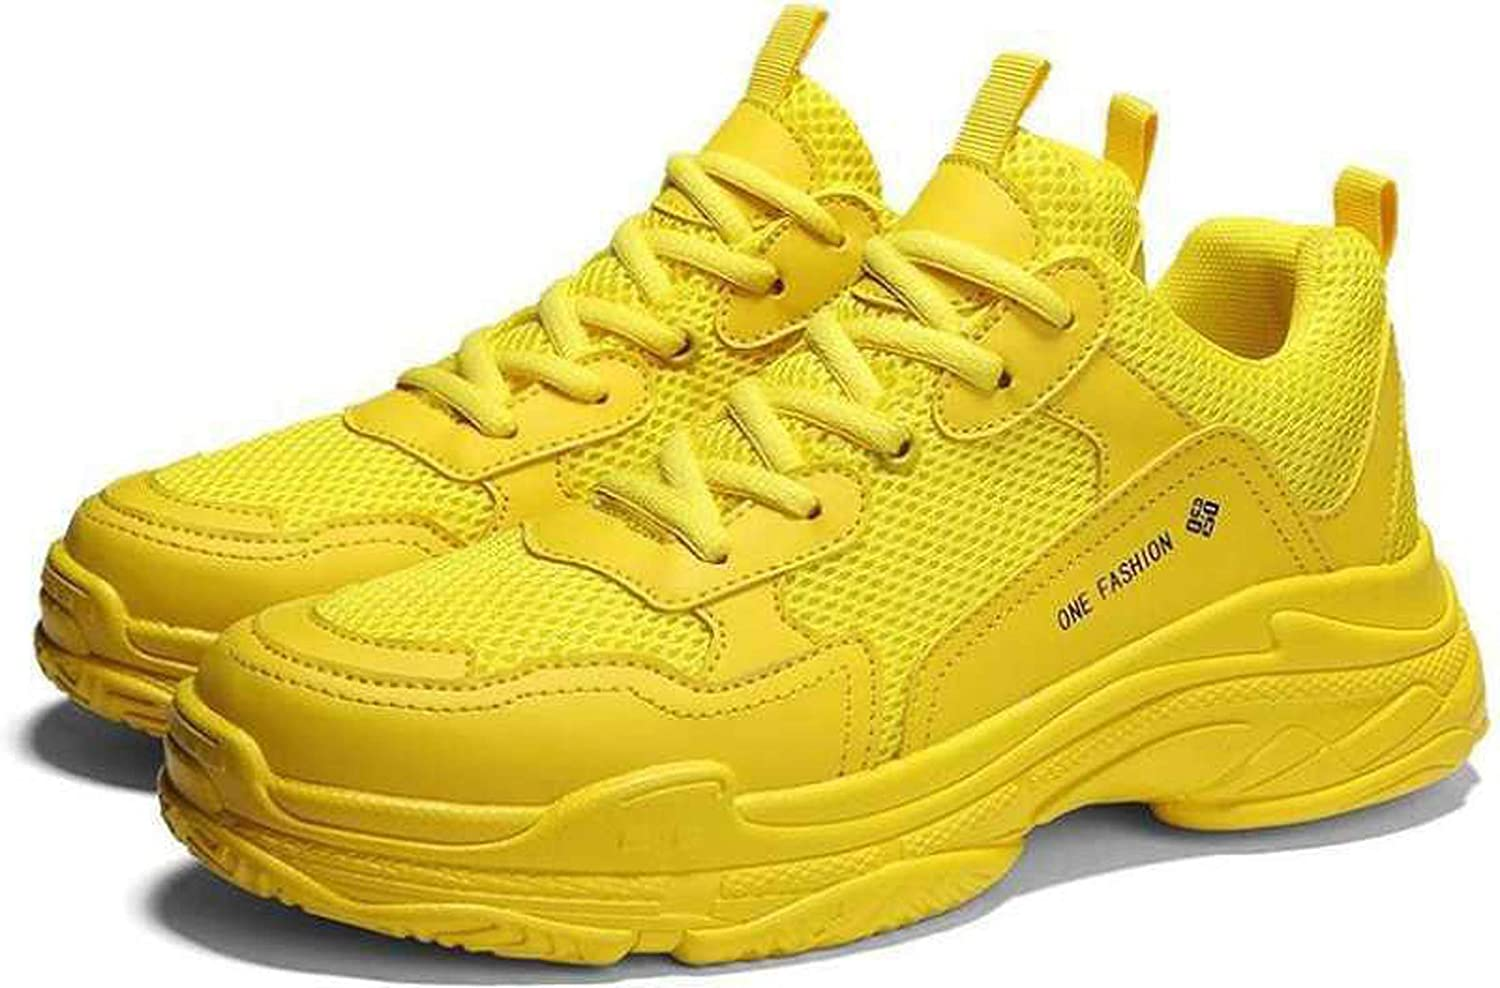 Stylish Casual Yellow Sneaker Shoes